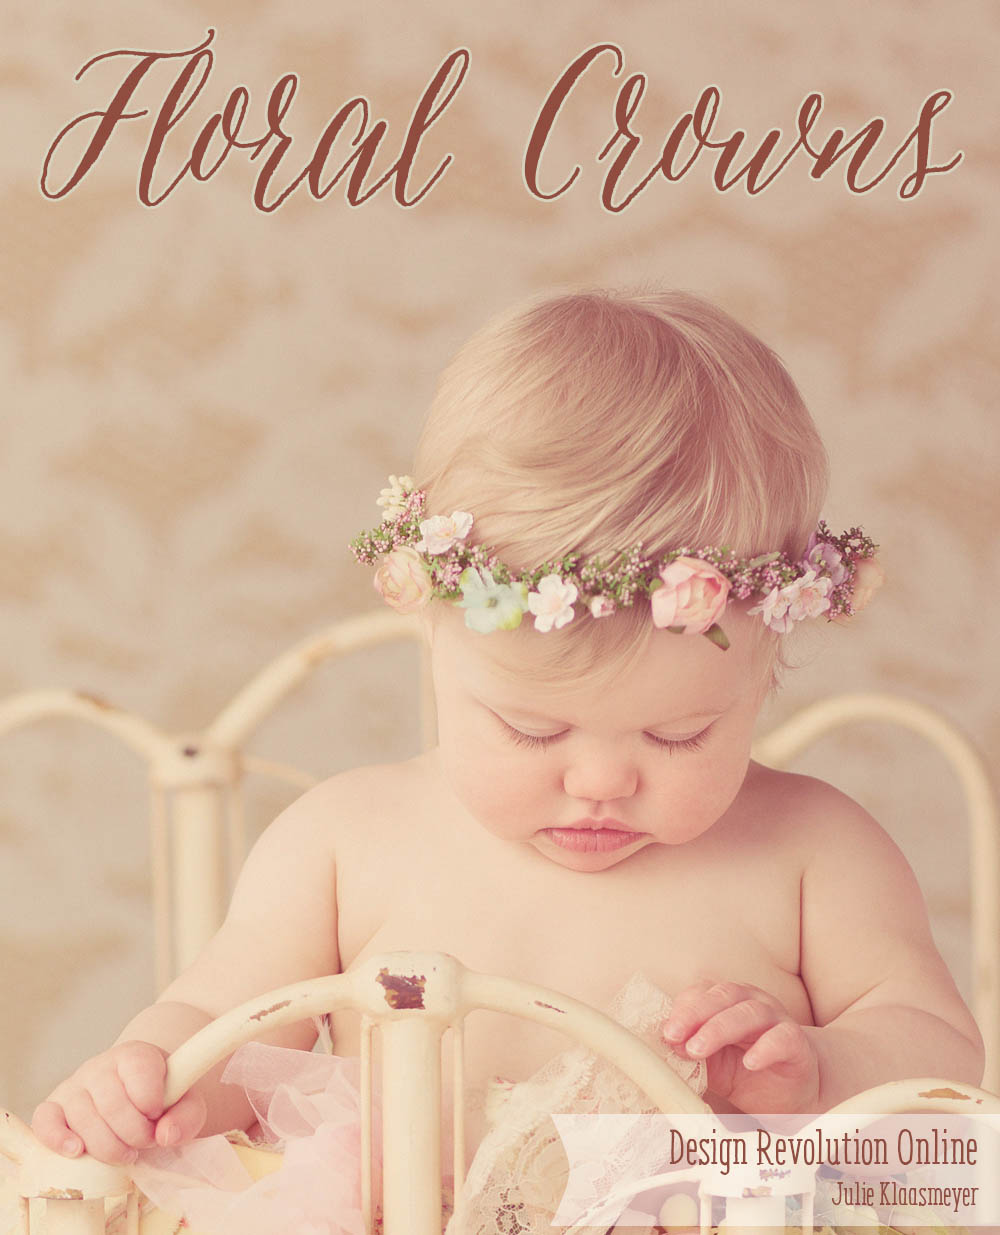 Trending tuesday floral crowns floral crowns izmirmasajfo Images